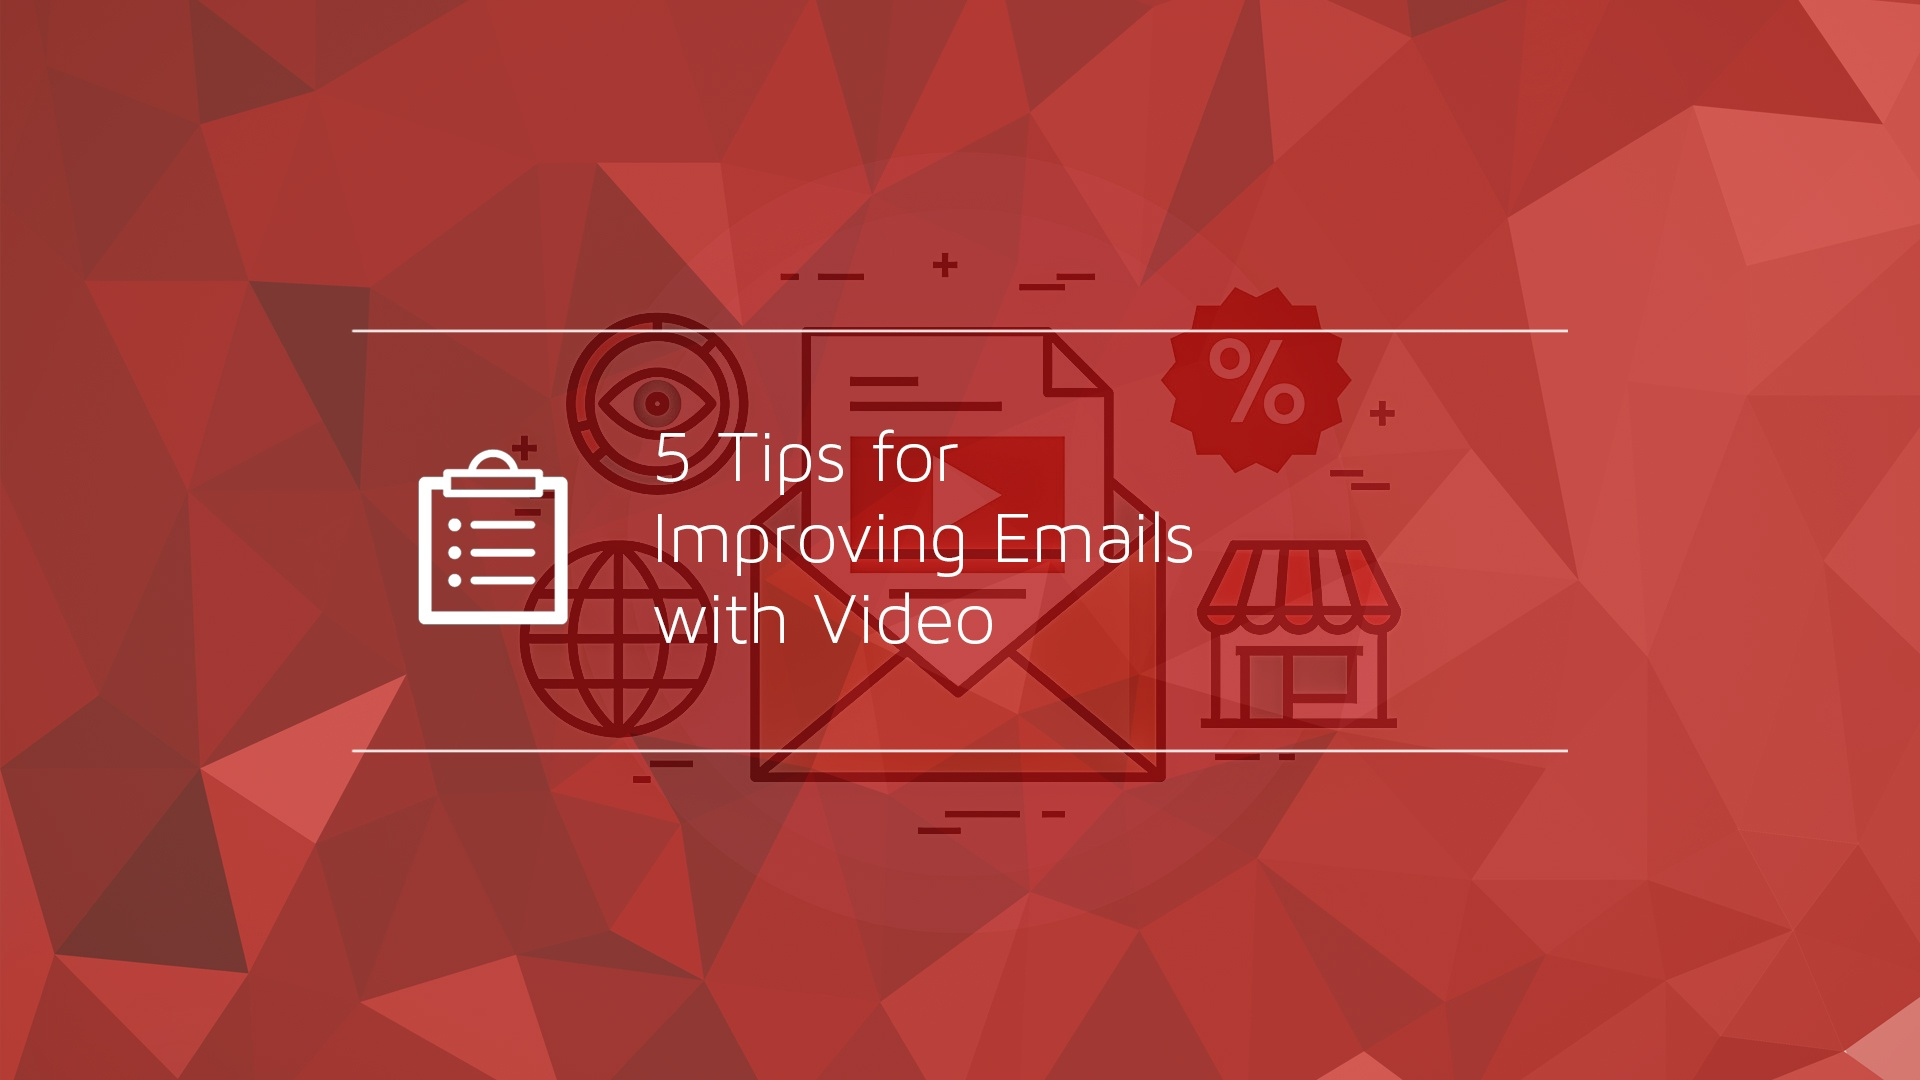 5 Tips for Improving Emails with Video-1.jpg